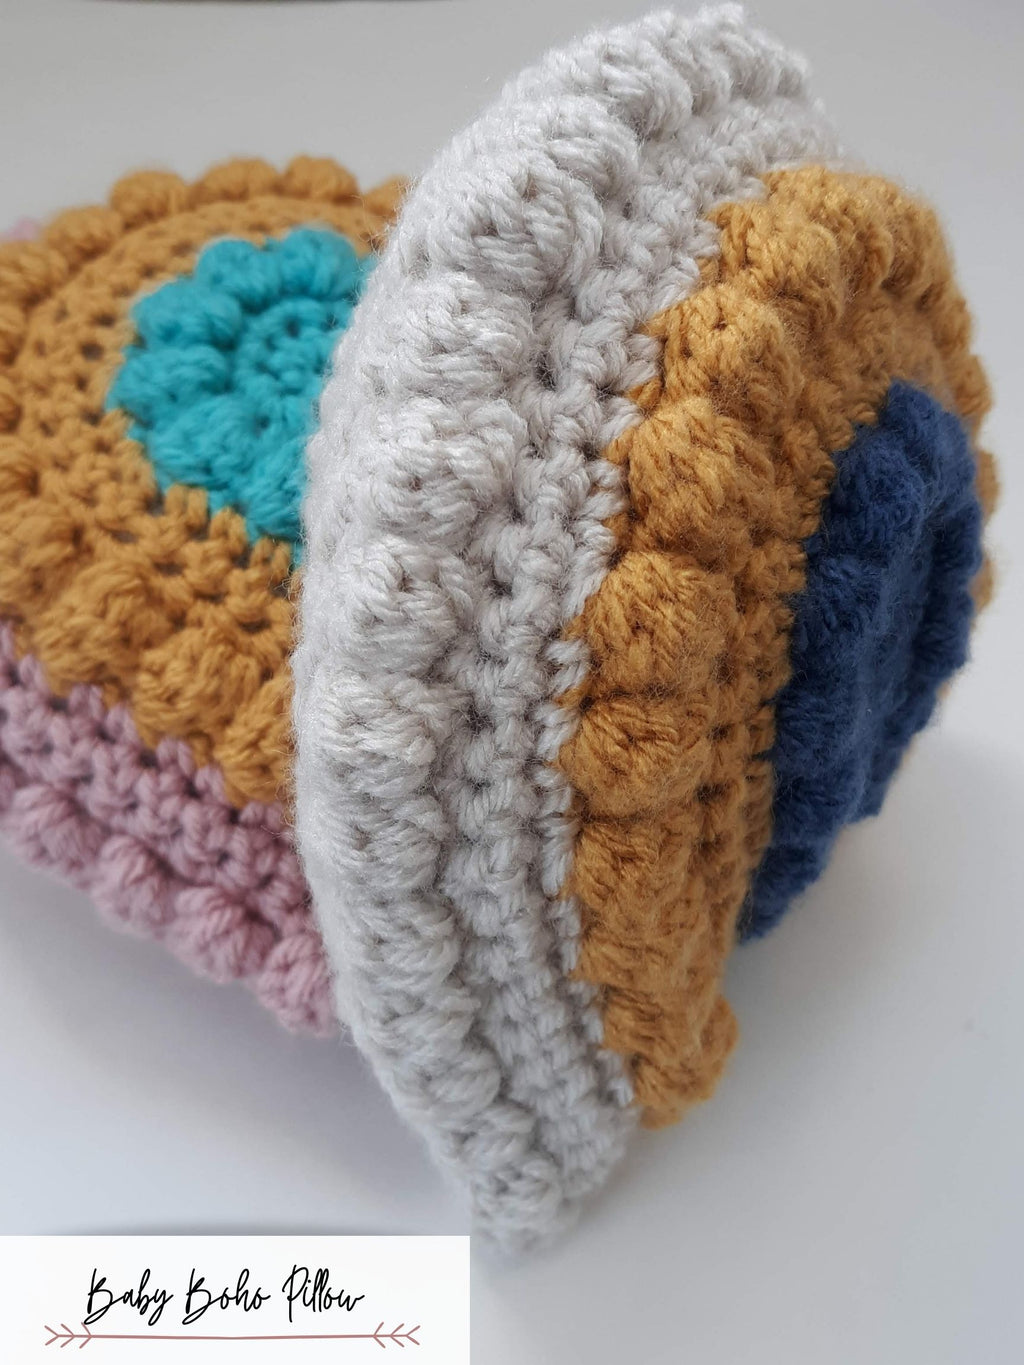 Baby Boho Stuffed Pillow